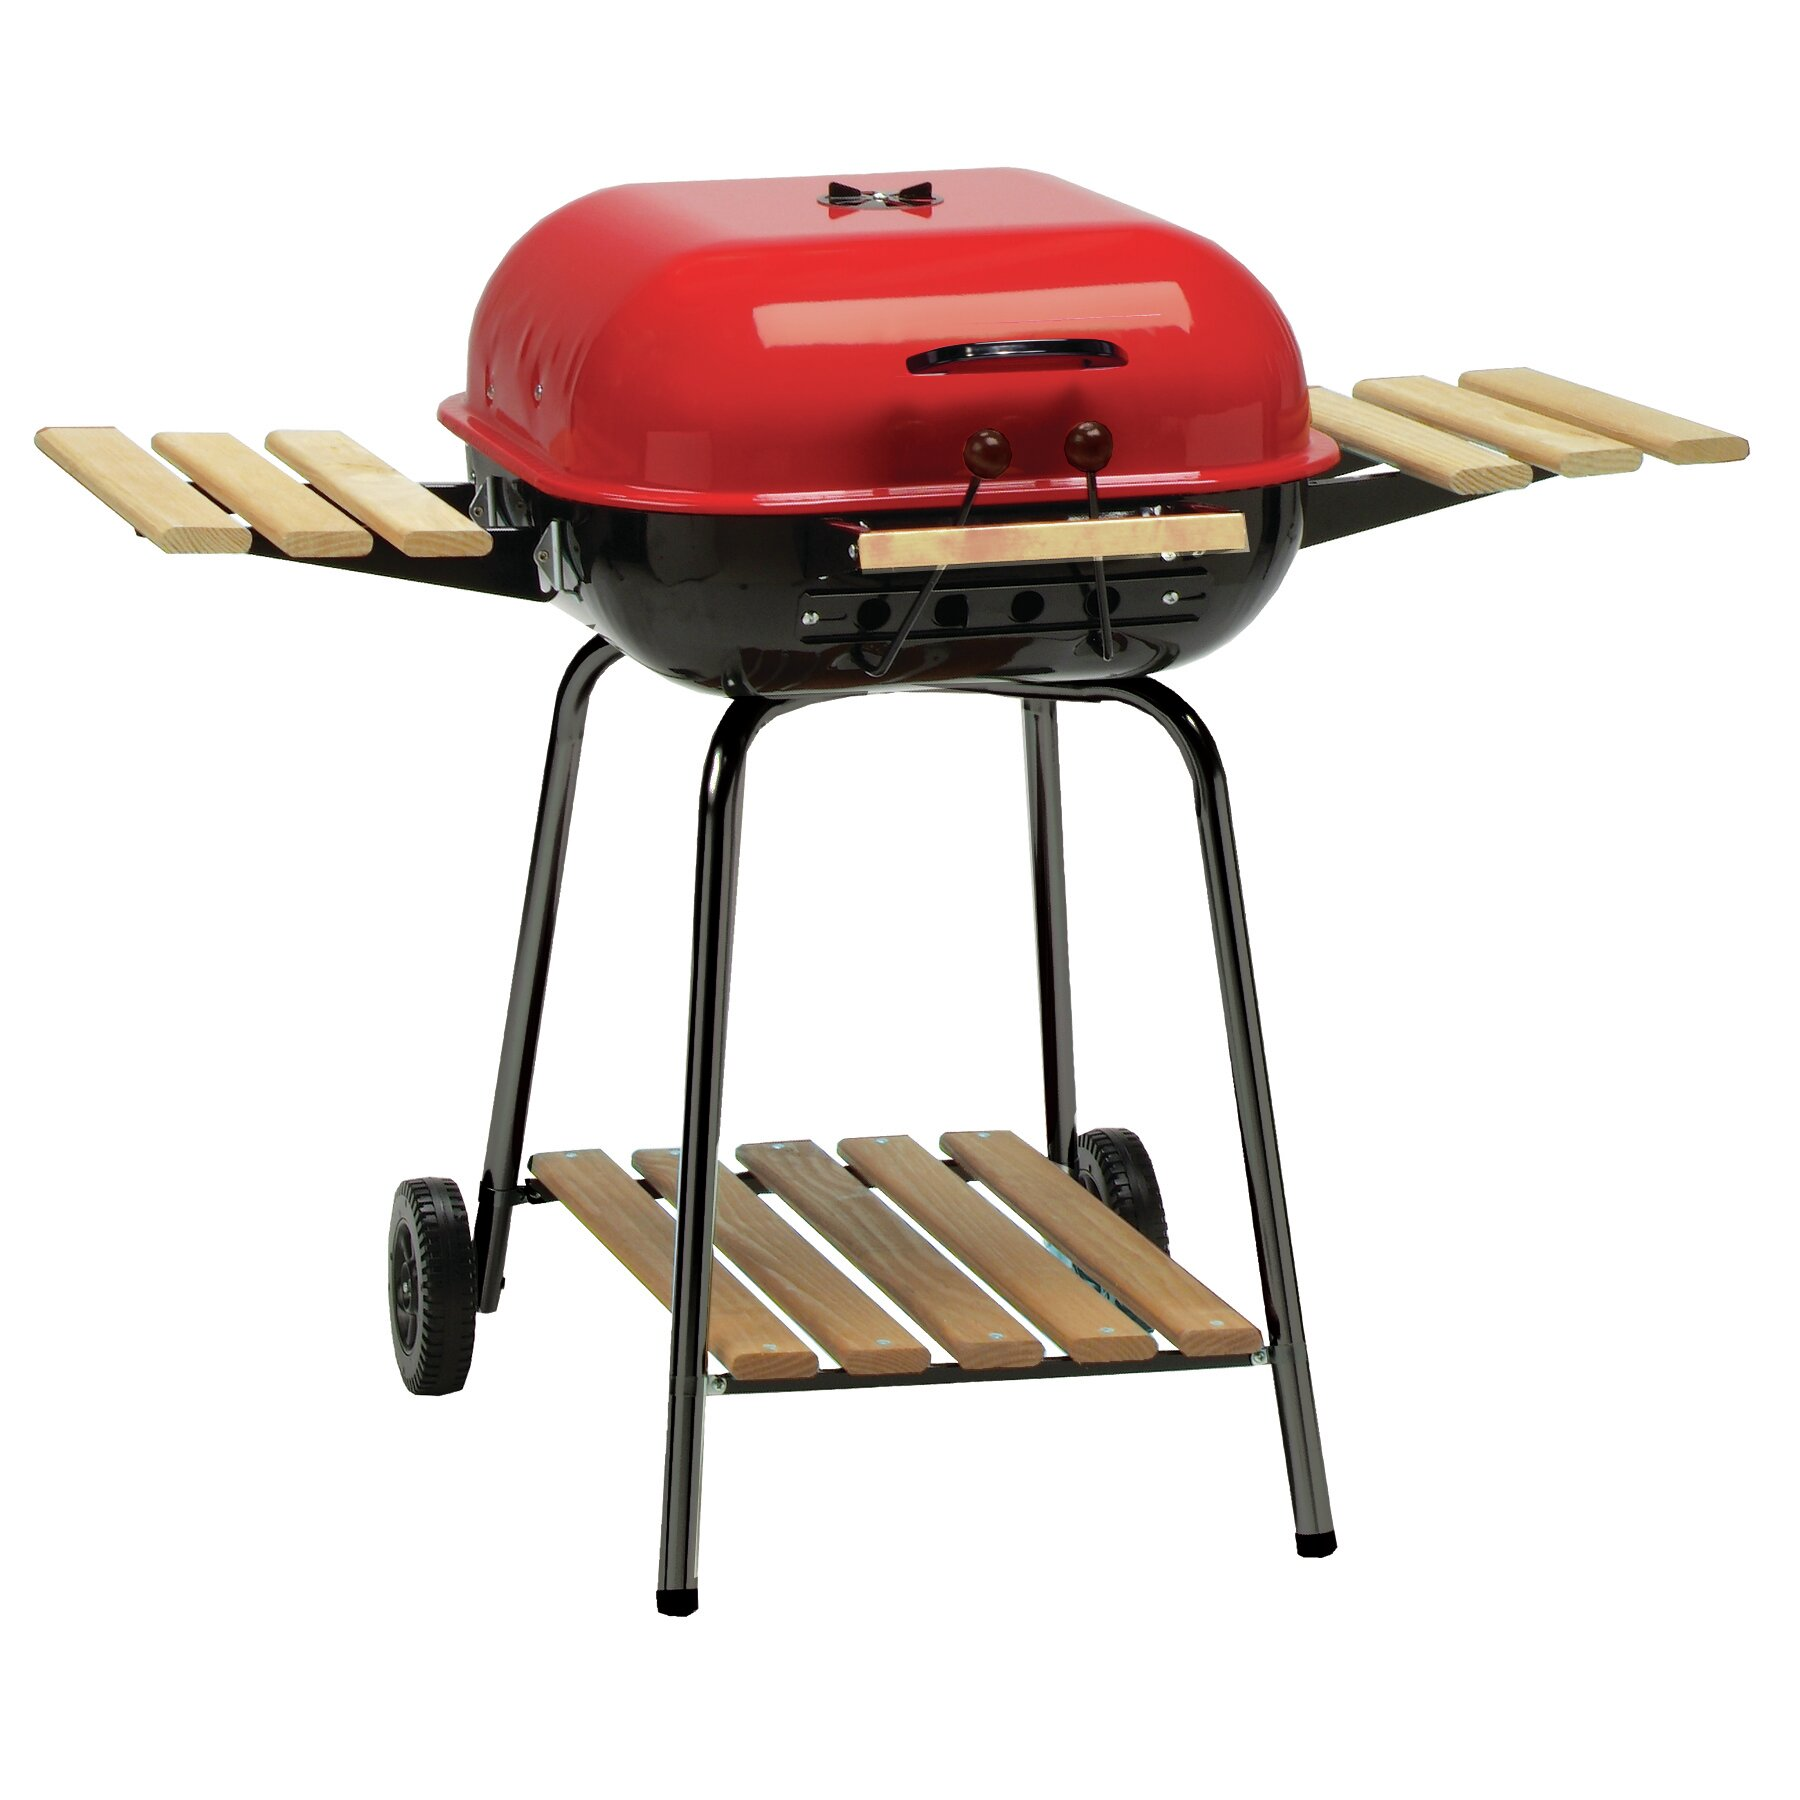 Meco Swinger Portable Charcoal Grill Wayfair